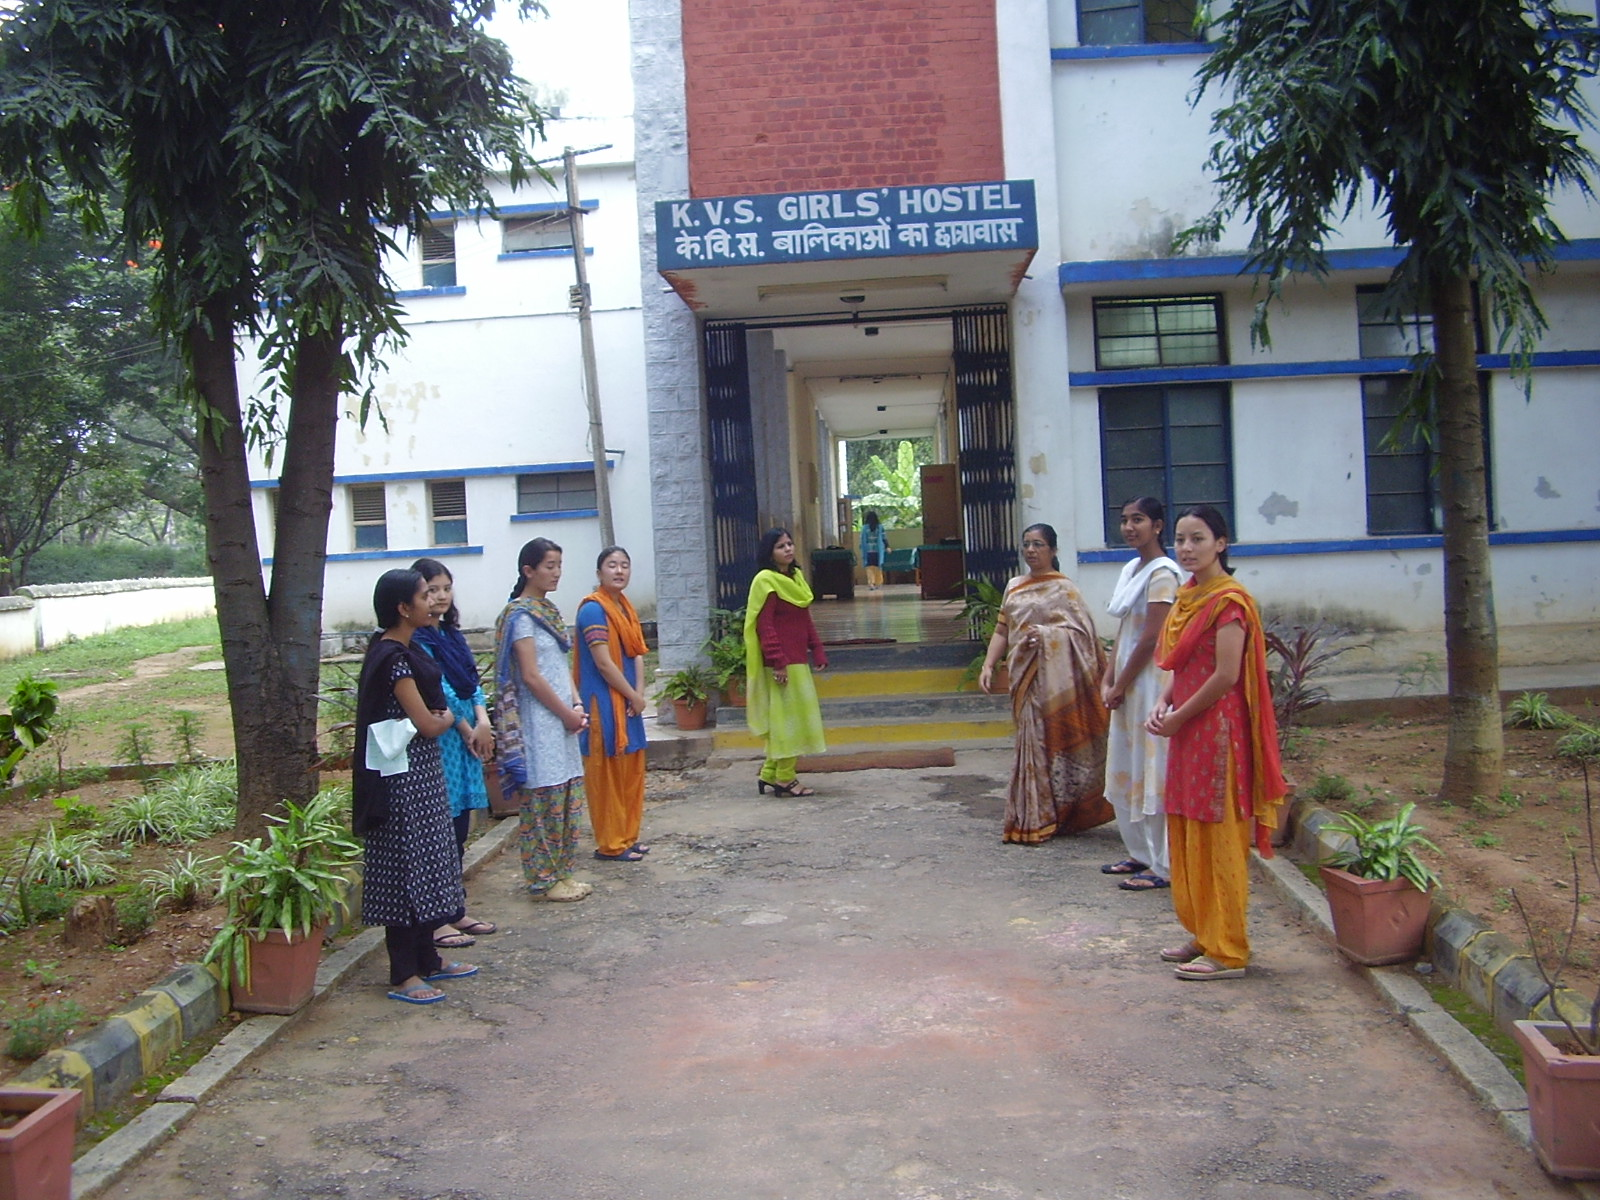 Himachal Pradesh Medical College at Shimla (HPMC) was established in the year 1966 with admissions of 50 ... sexy girl